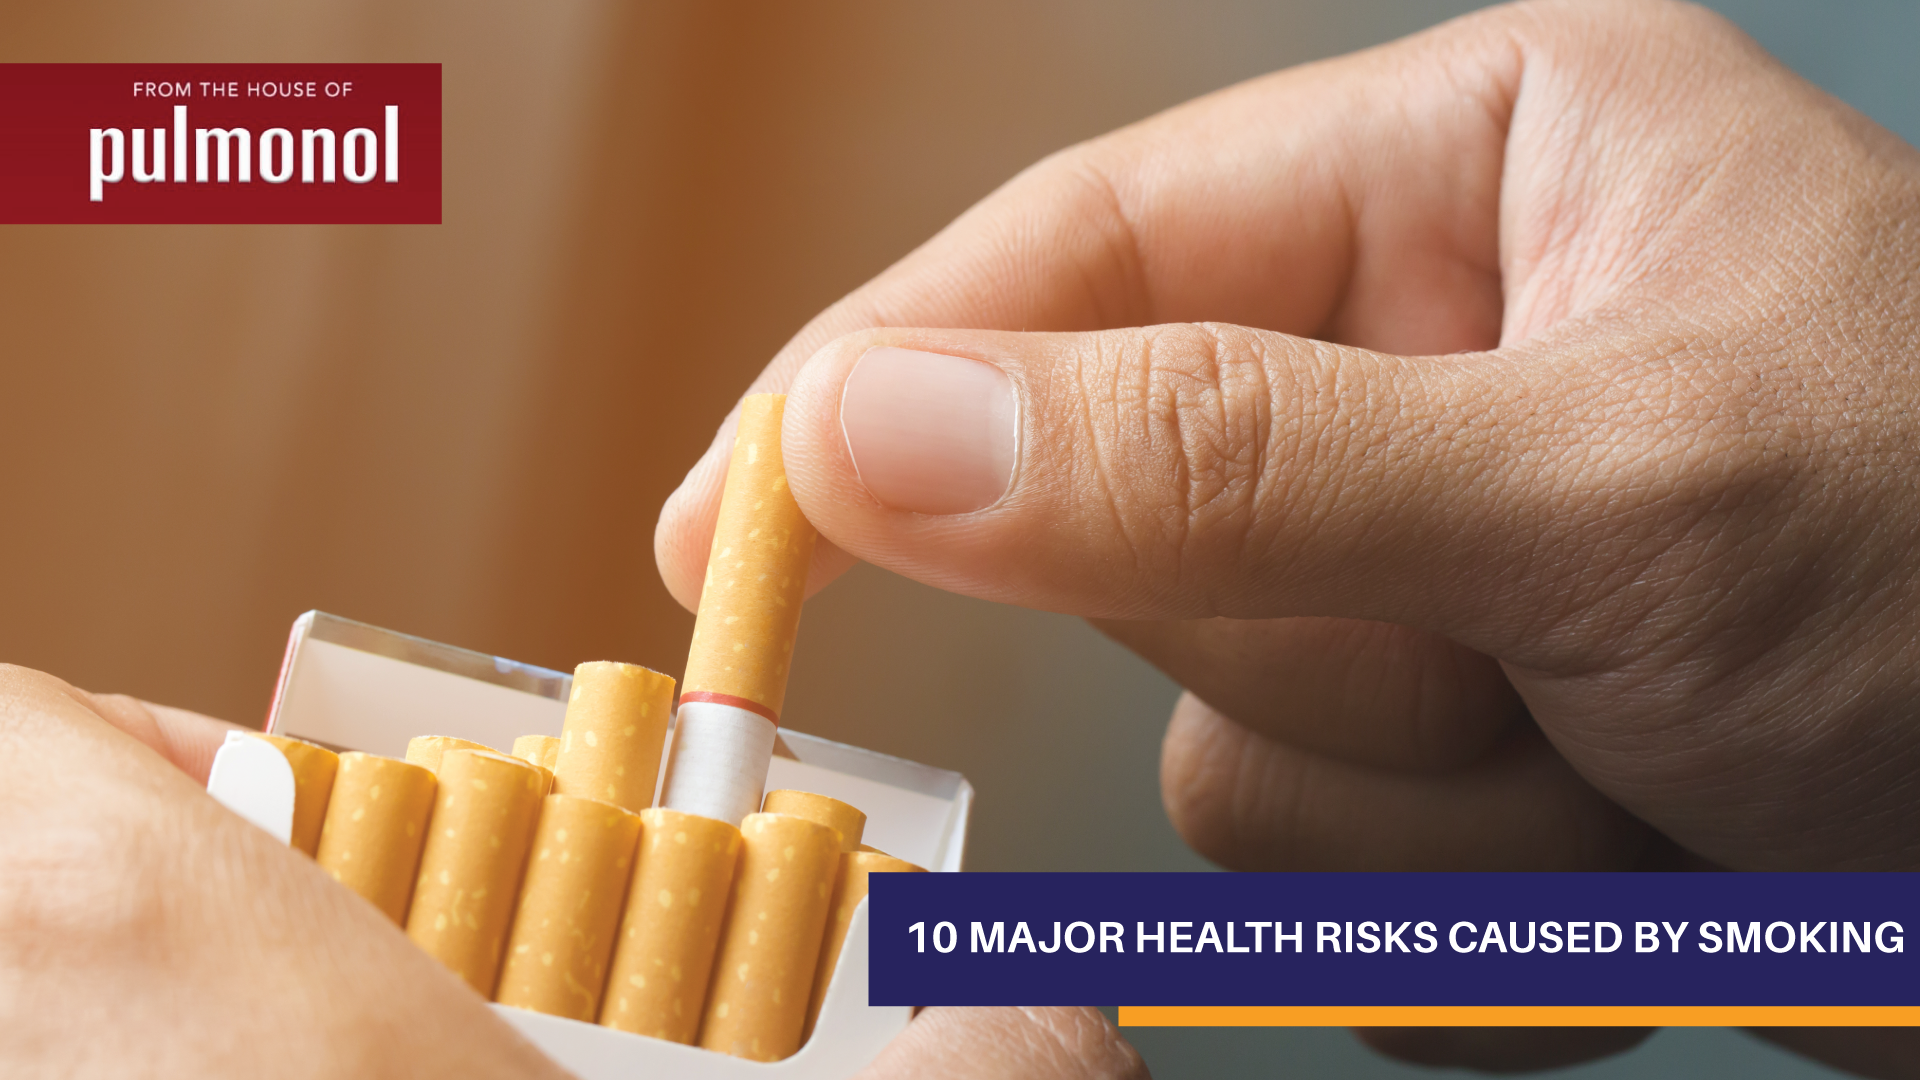 10 Major Health Risks Caused By Smoking